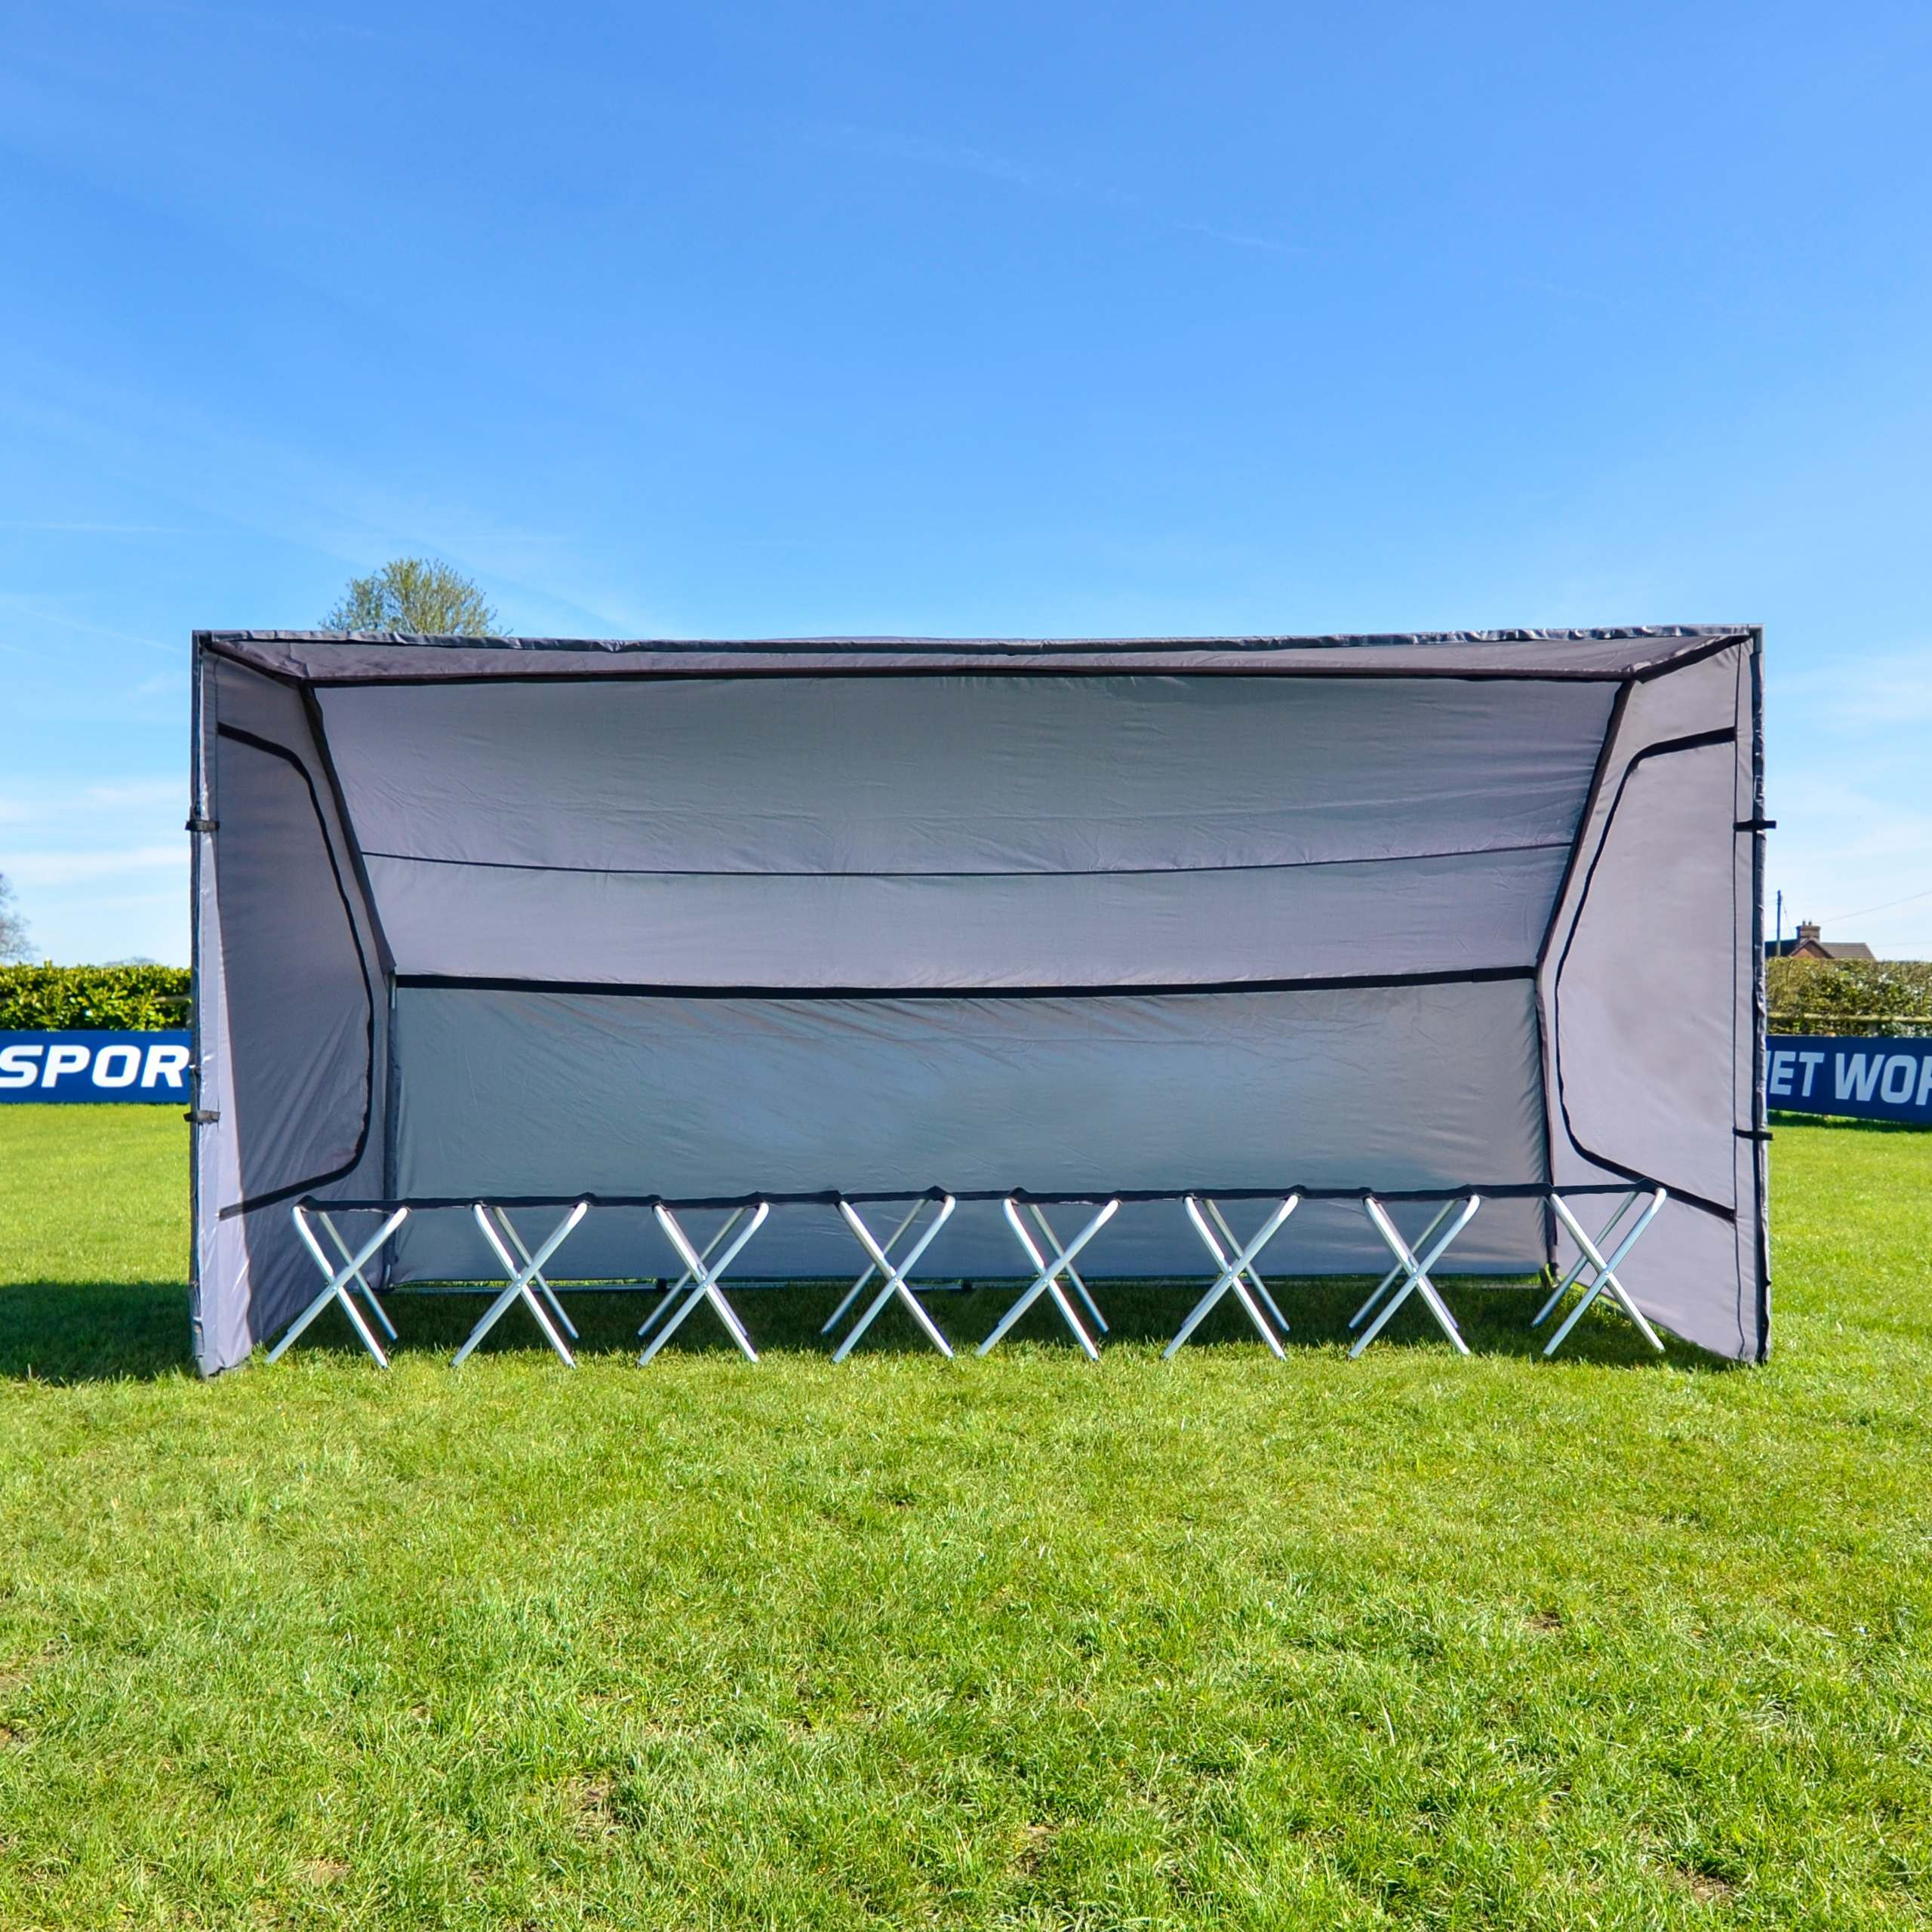 Athletic Field Shelters : Portable sports team shelter net world